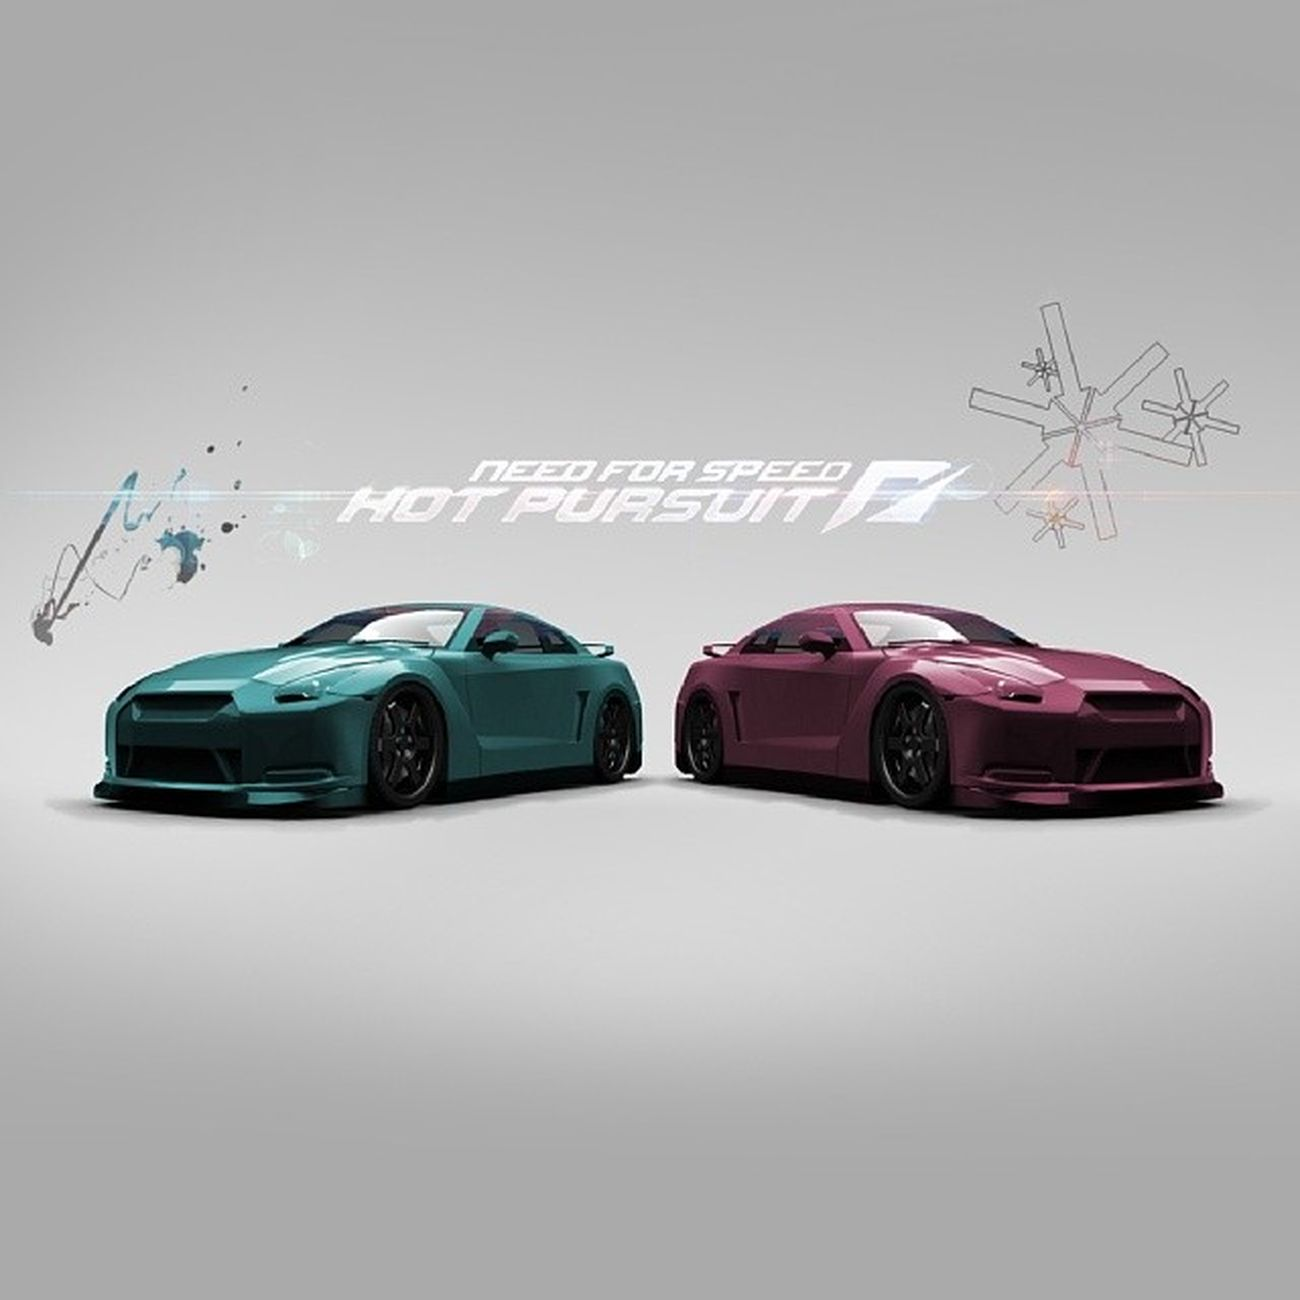 Need For Speed : Hot Pursuit Presented to @accelerationation NFS HotPursuit  Photoshop Edited cars vehicle game race